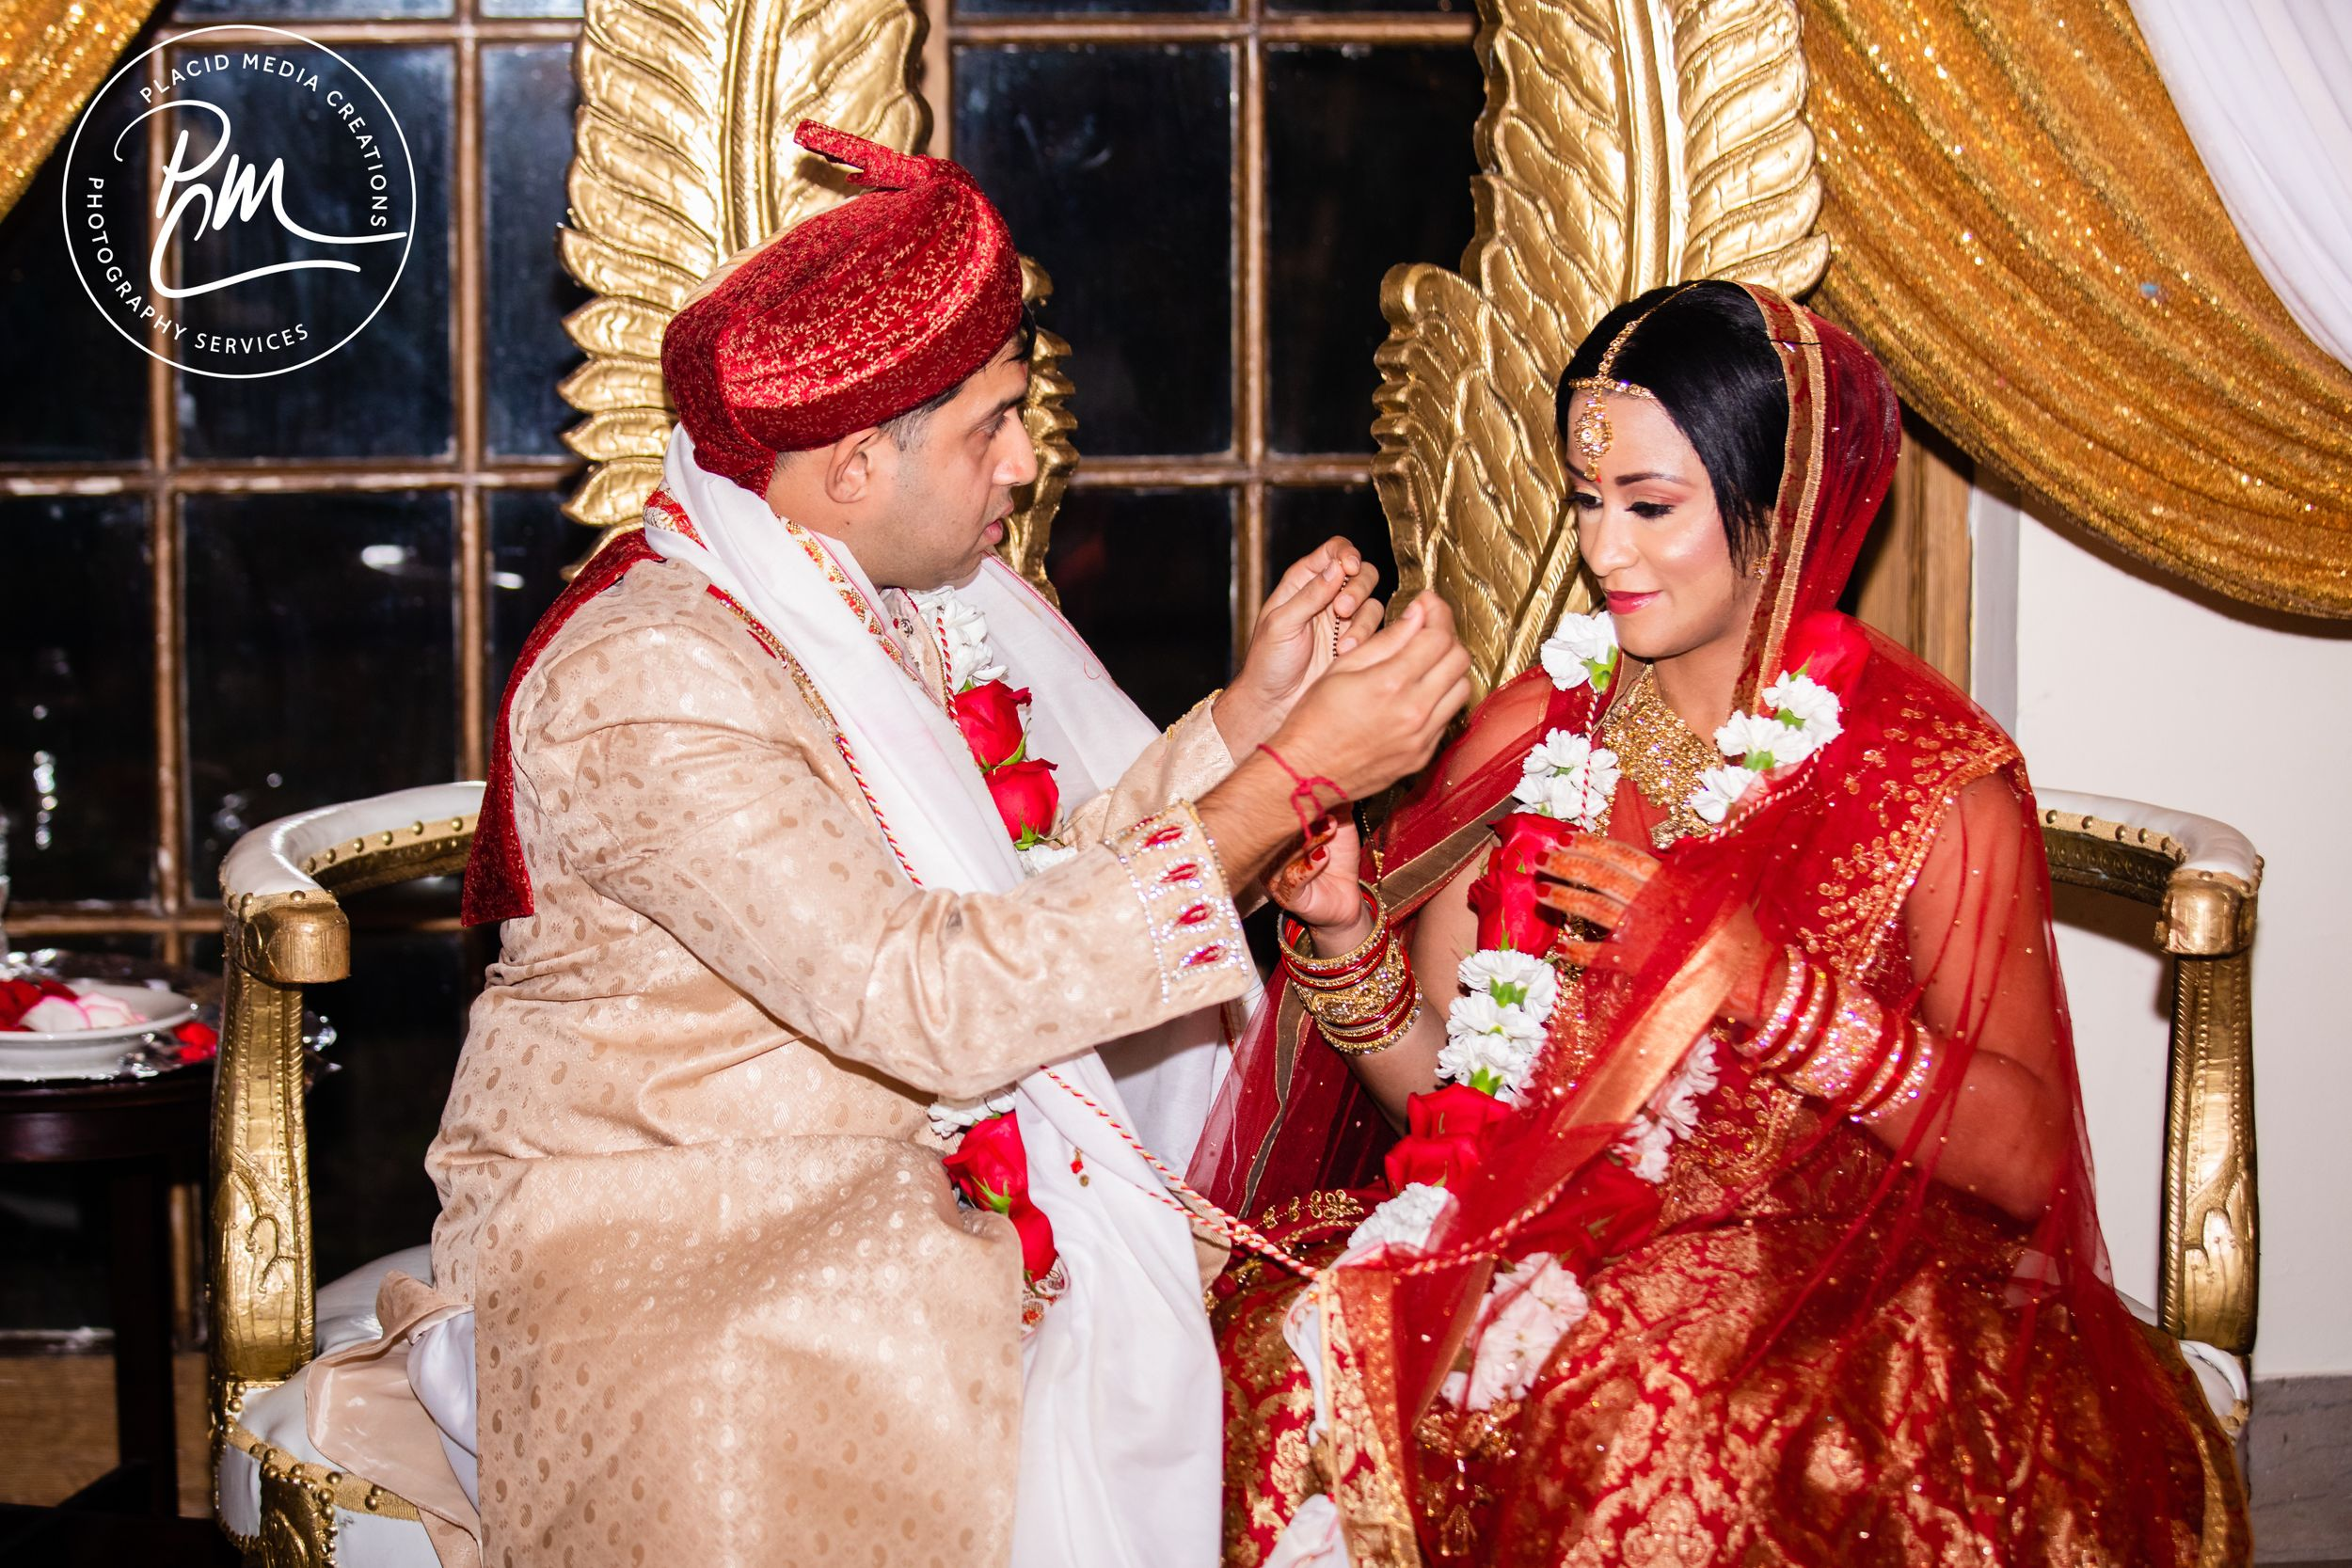 A traditional Hindu Wedding (Vivaha) is comprised of a series of religious ceremonies and rituals